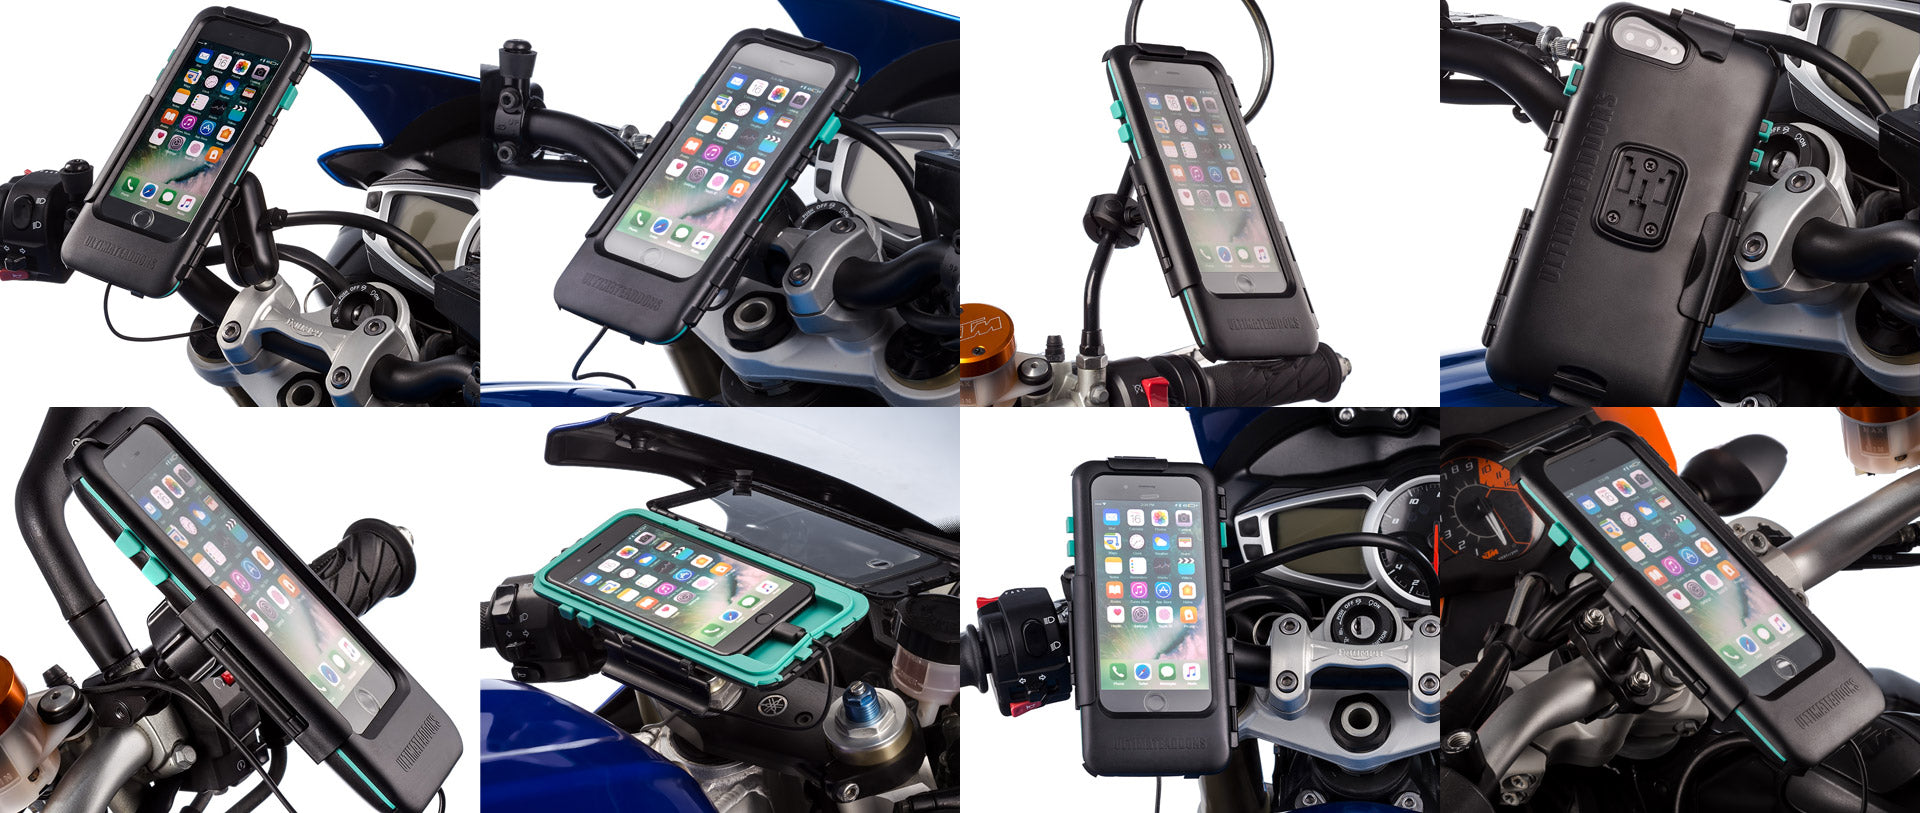 iPhone 7 Plus motorcycle tough mount case